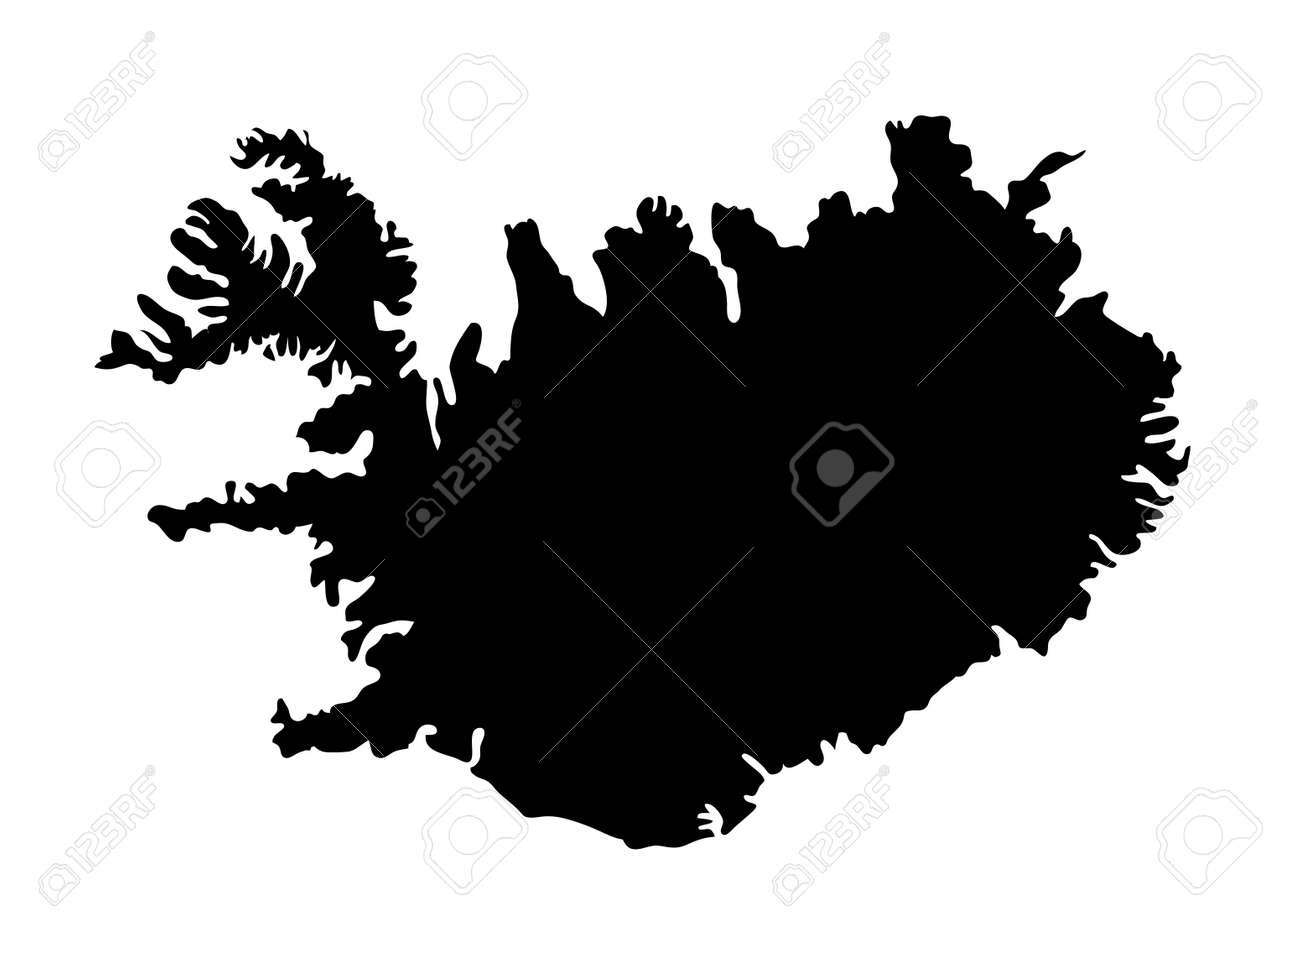 Map Of Iceland Silhouette. Royalty Free Cliparts, Vectors, And Stock ...